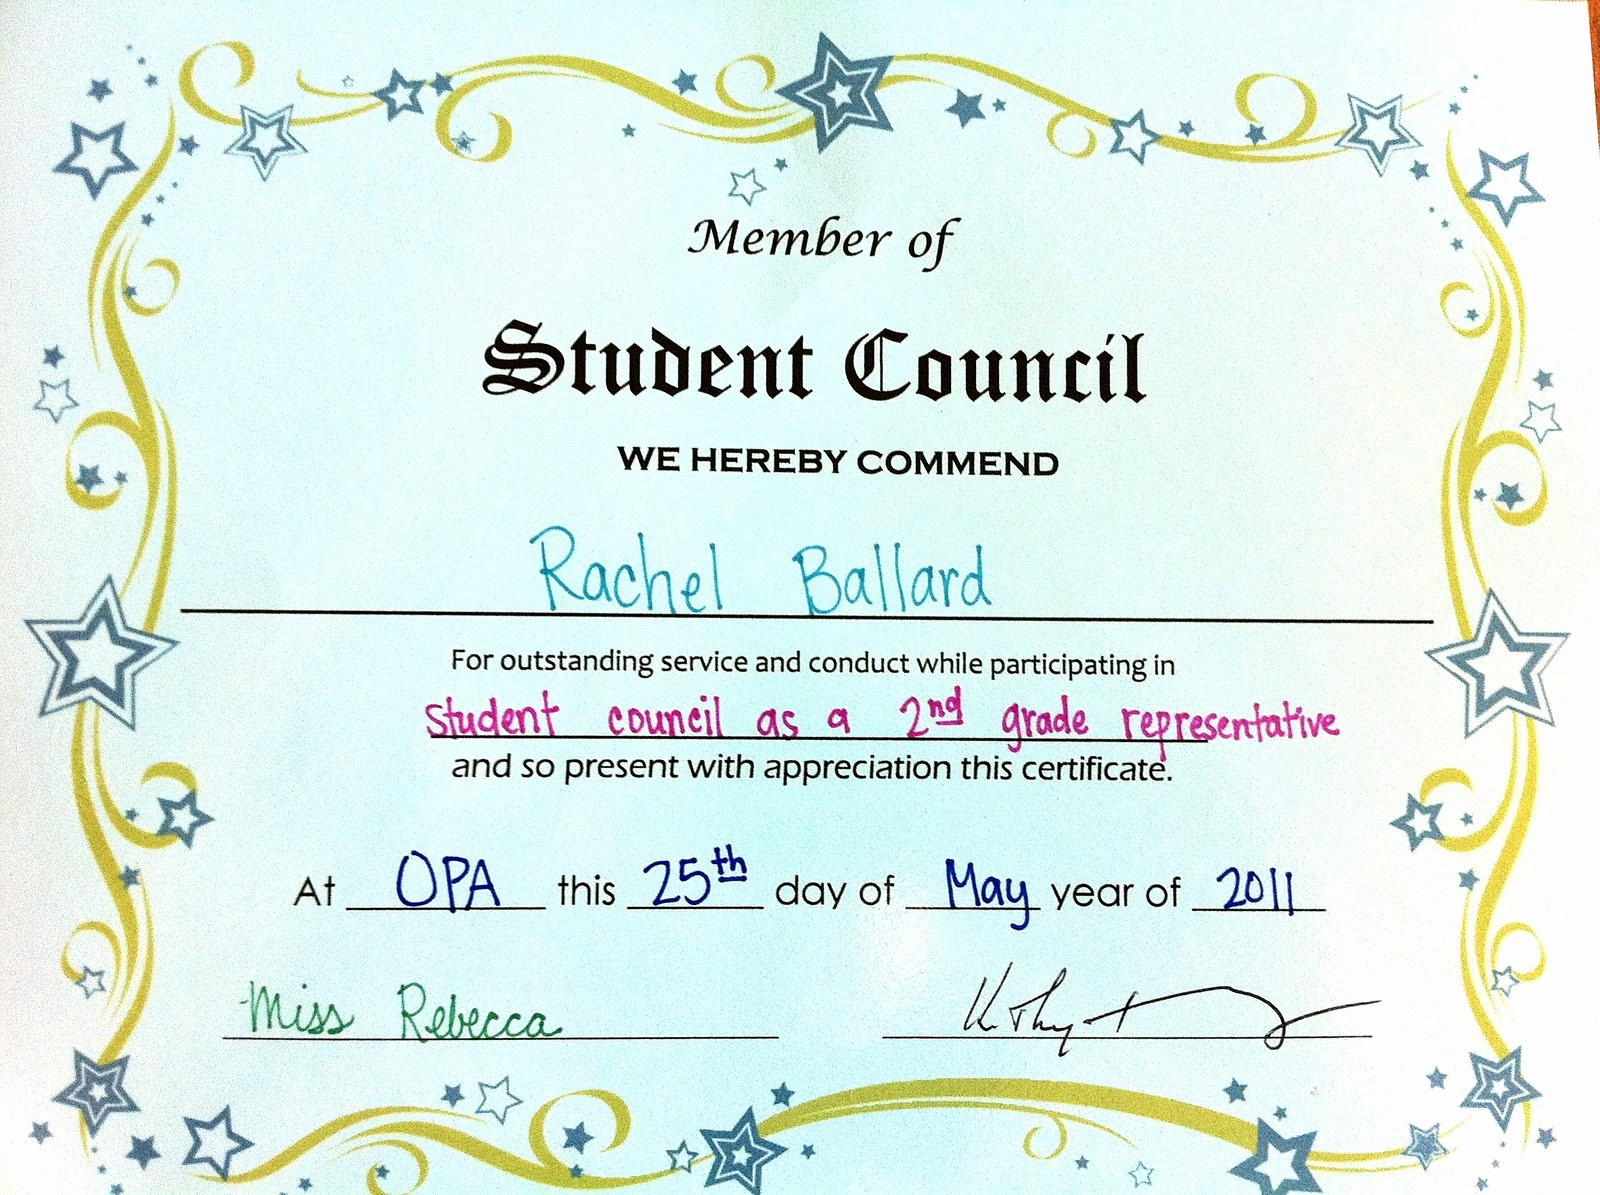 Student Council Award Certificate Template New Student Council Certificates Printable